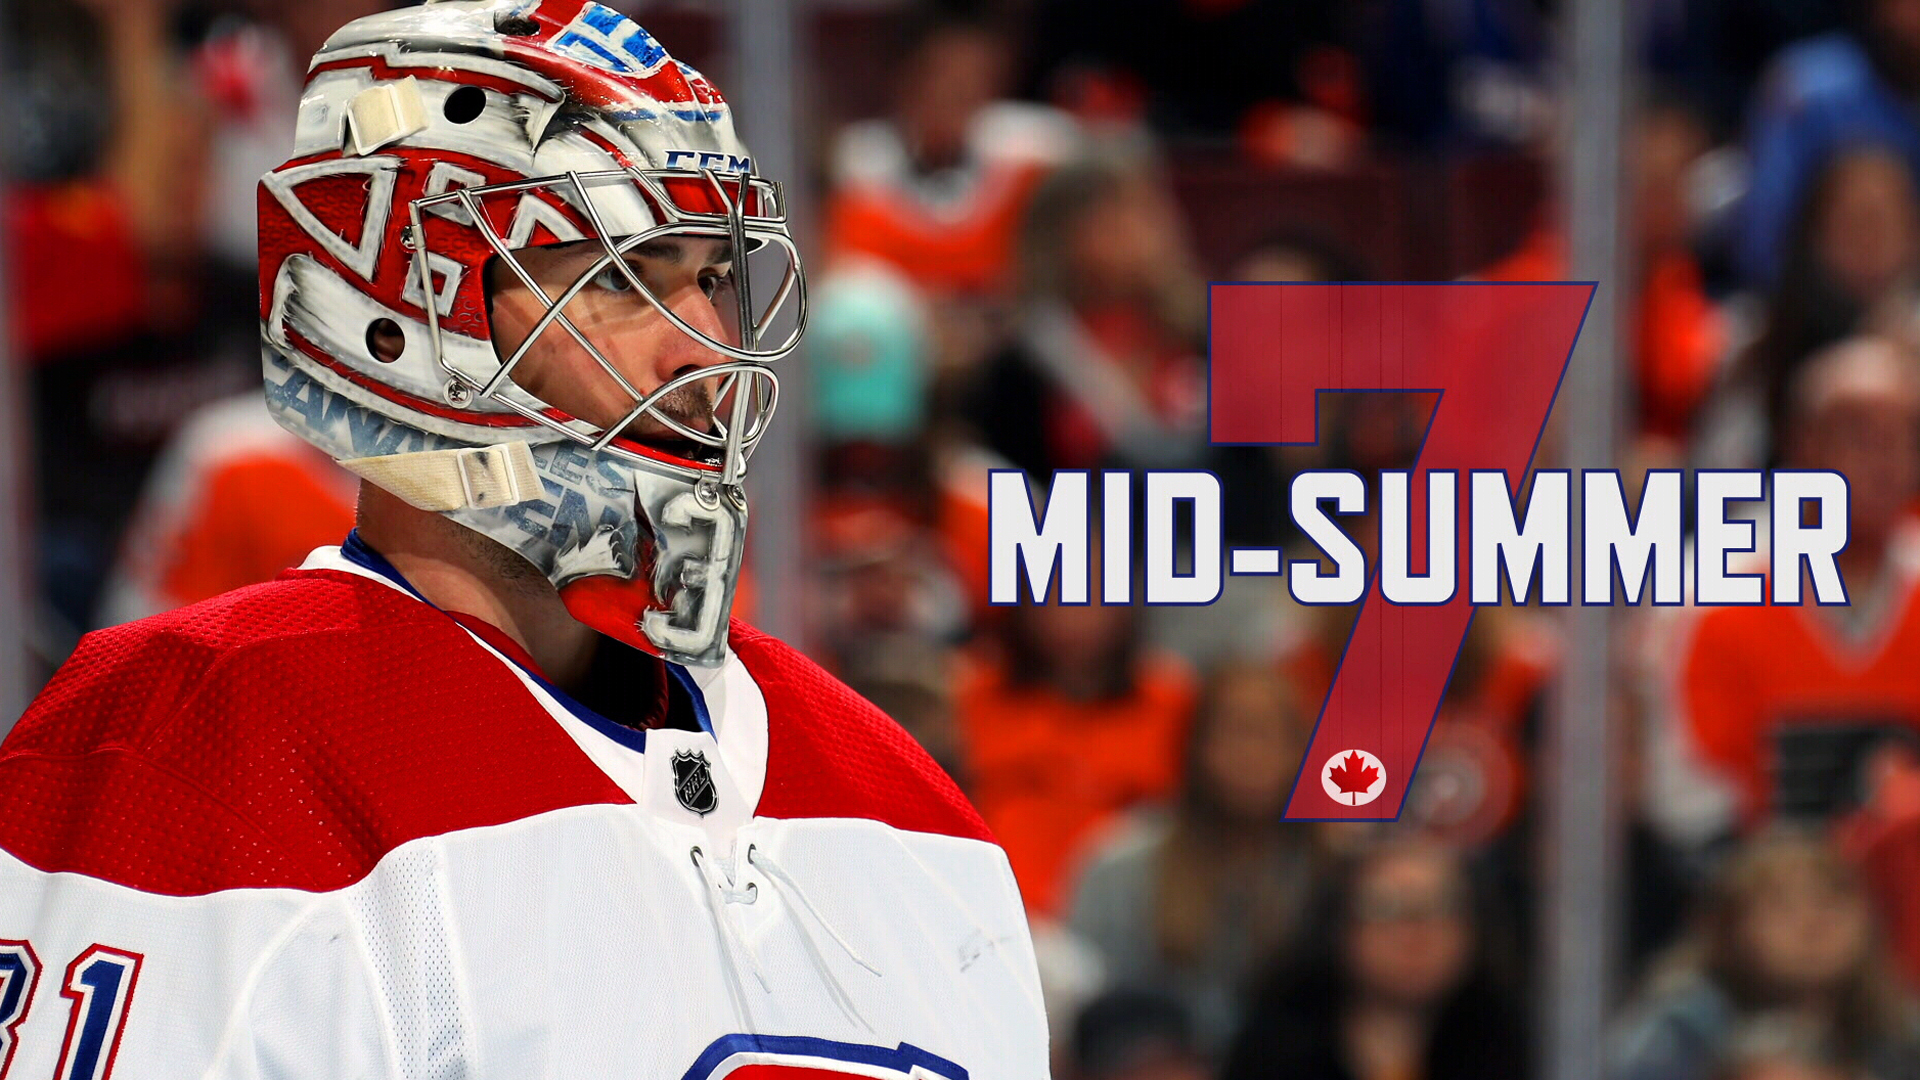 Mid-Summer 7: Canadiens missed out on Aho, but future remains bright